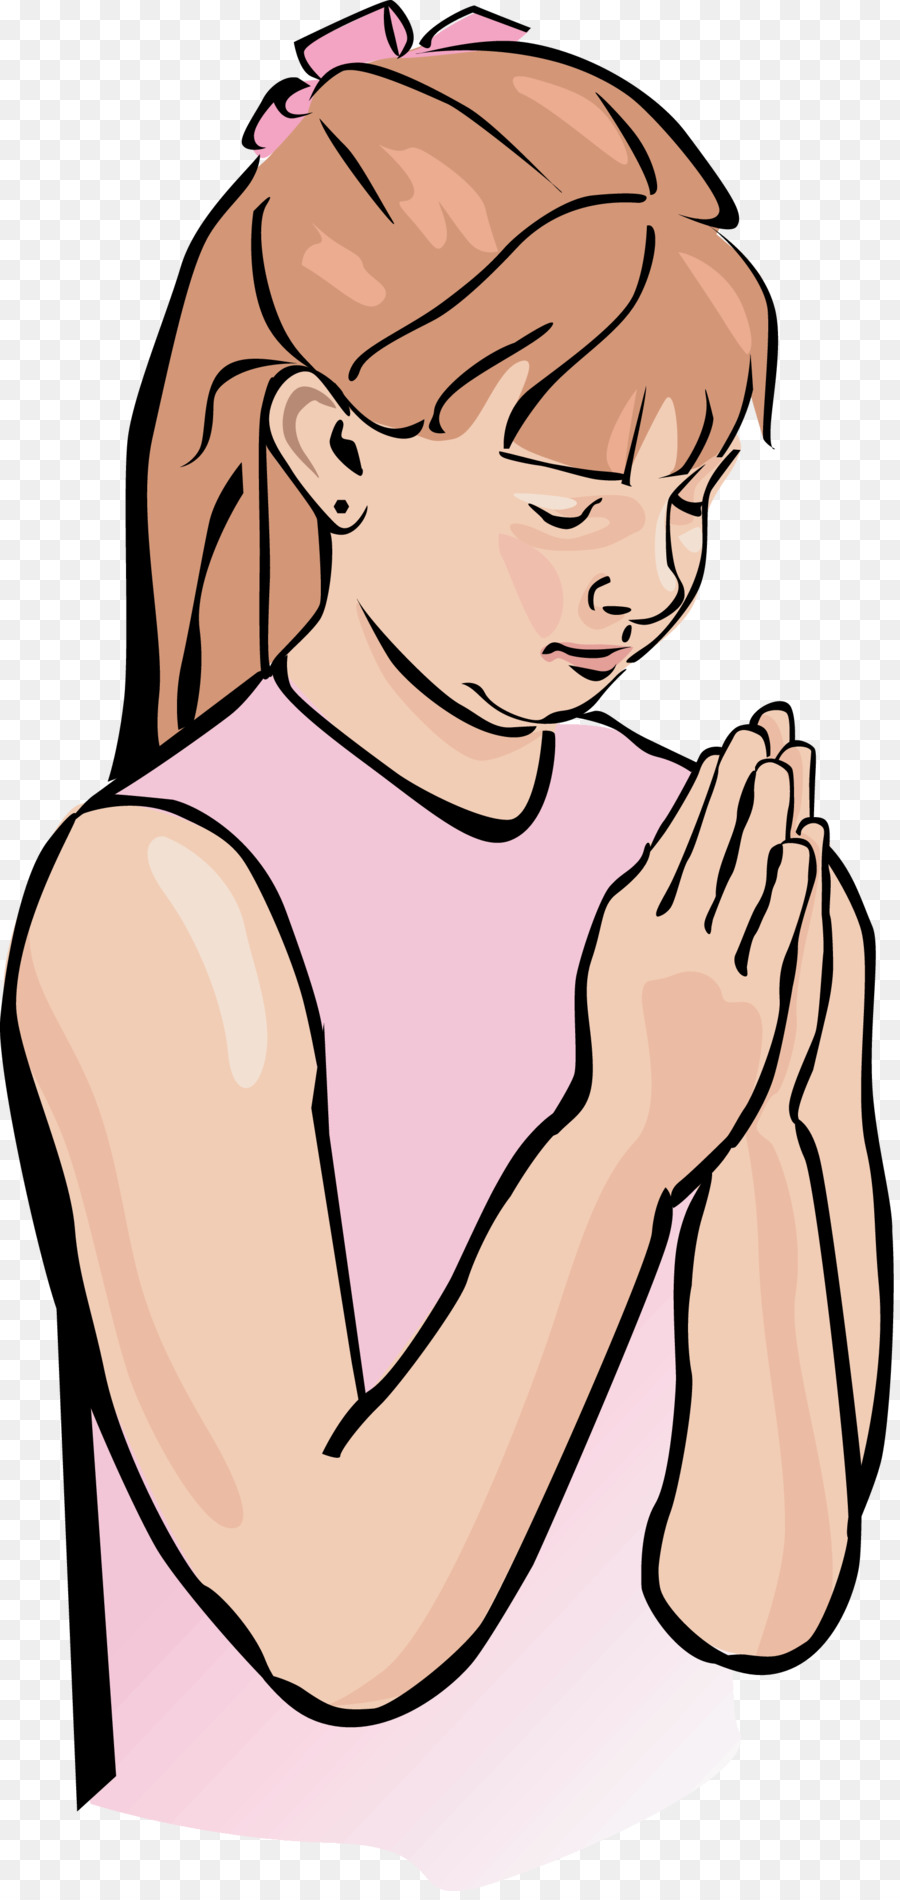 900x1900 Praying Hands Prayer Clip Art